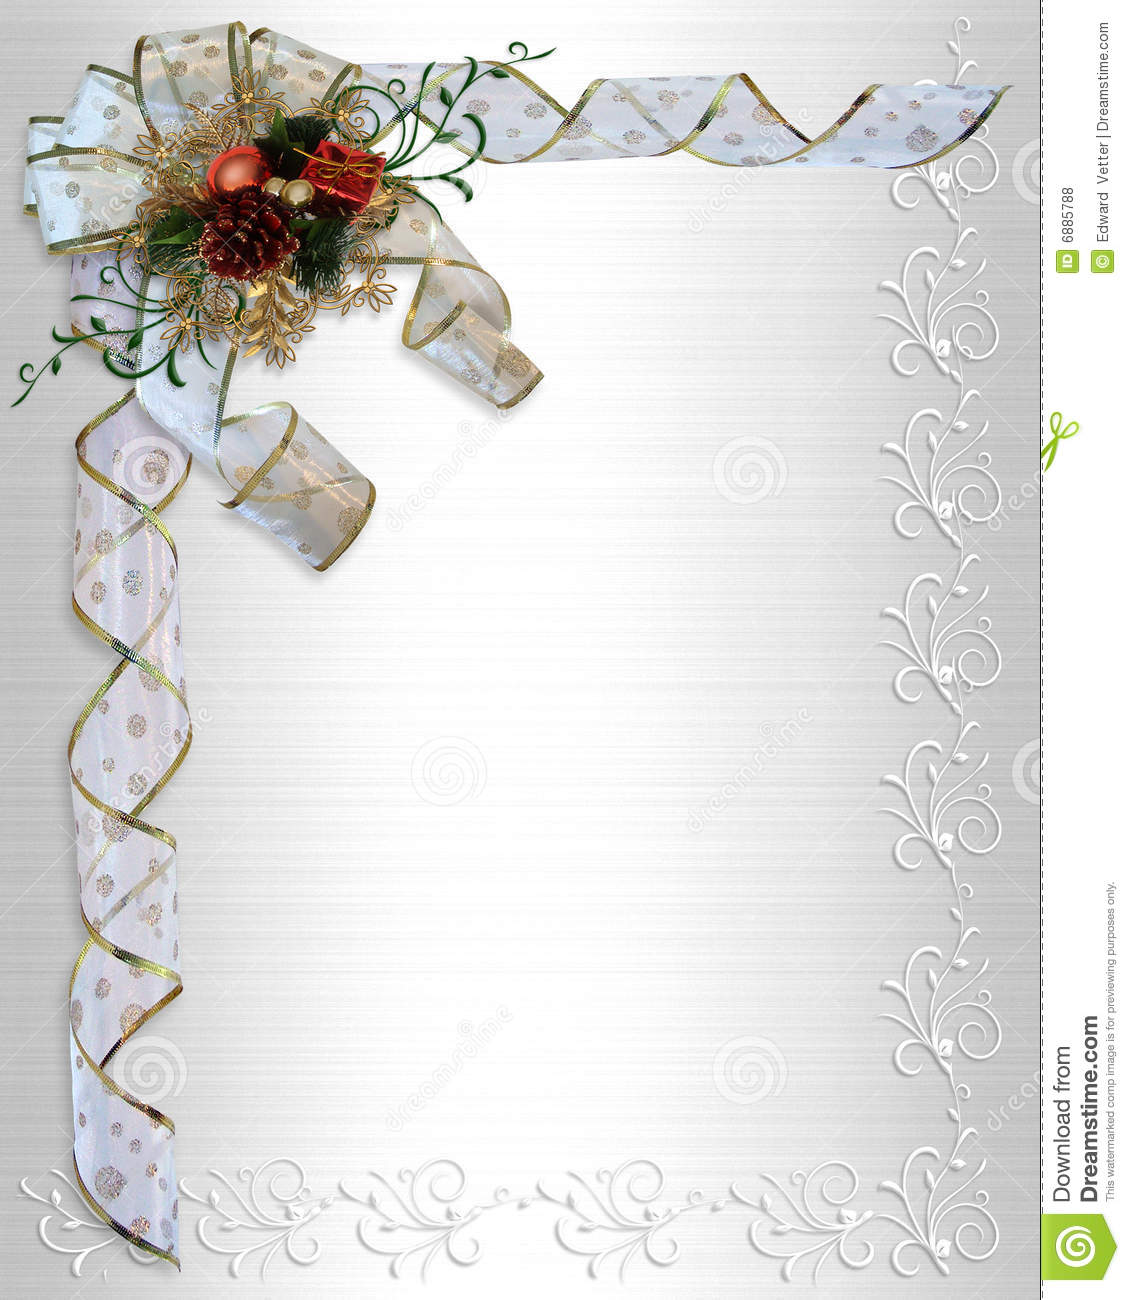 Image and illustration Composition Christmas design ribbons and bow on ...